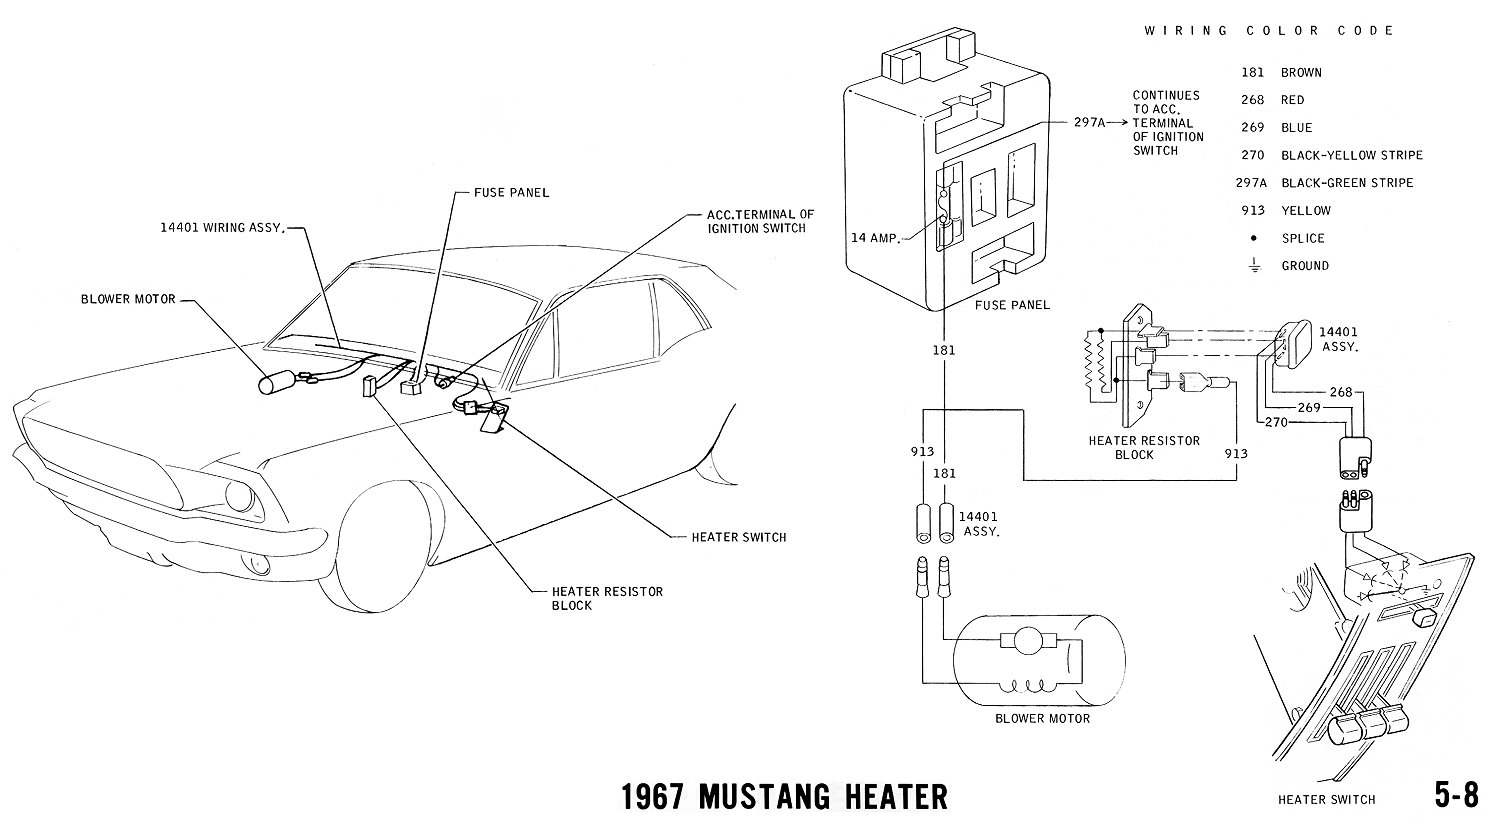 1967 mustang wiring and vacuum diagrams average joe 1968 mustang heater motor wiring